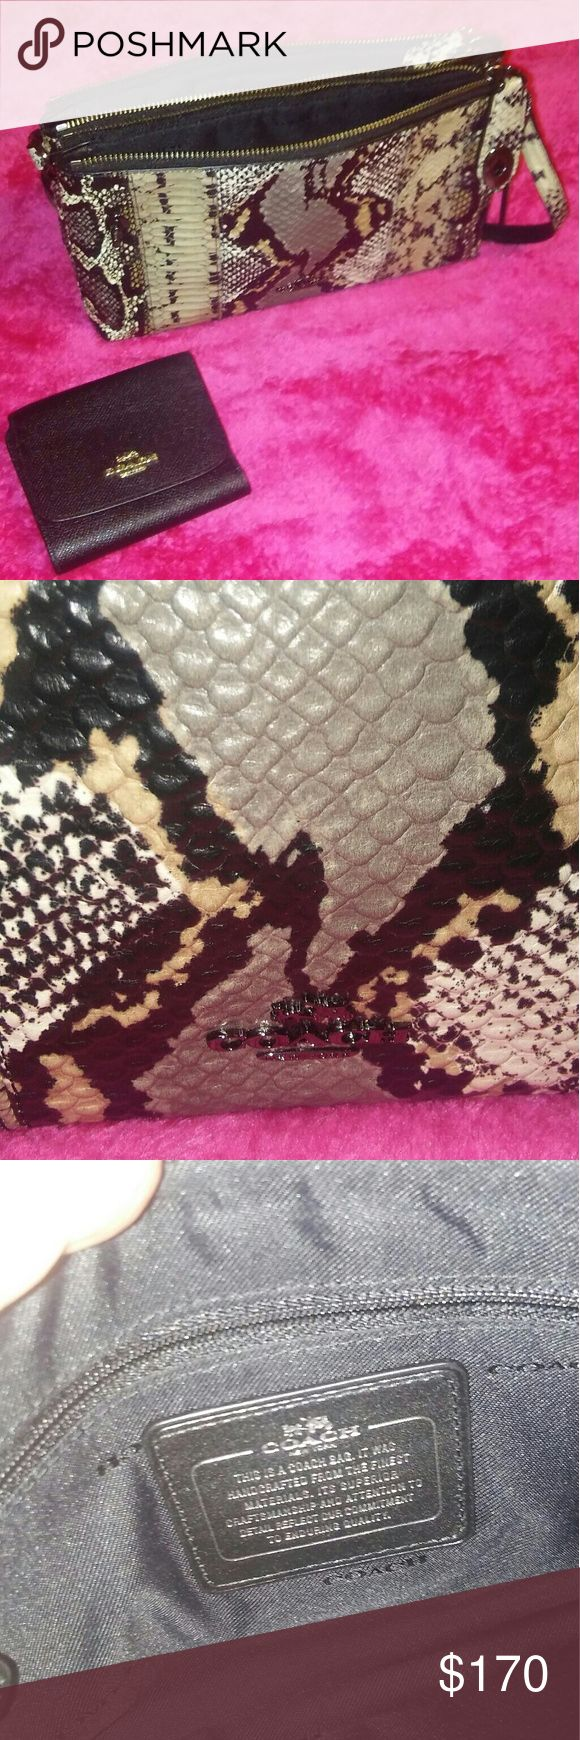 NWOT Coach Snakeskin bag and wallet bundle Limited Edition Snakeskin bag never used and small black Coach wallet very beautiful bag. Bags Crossbody Bags